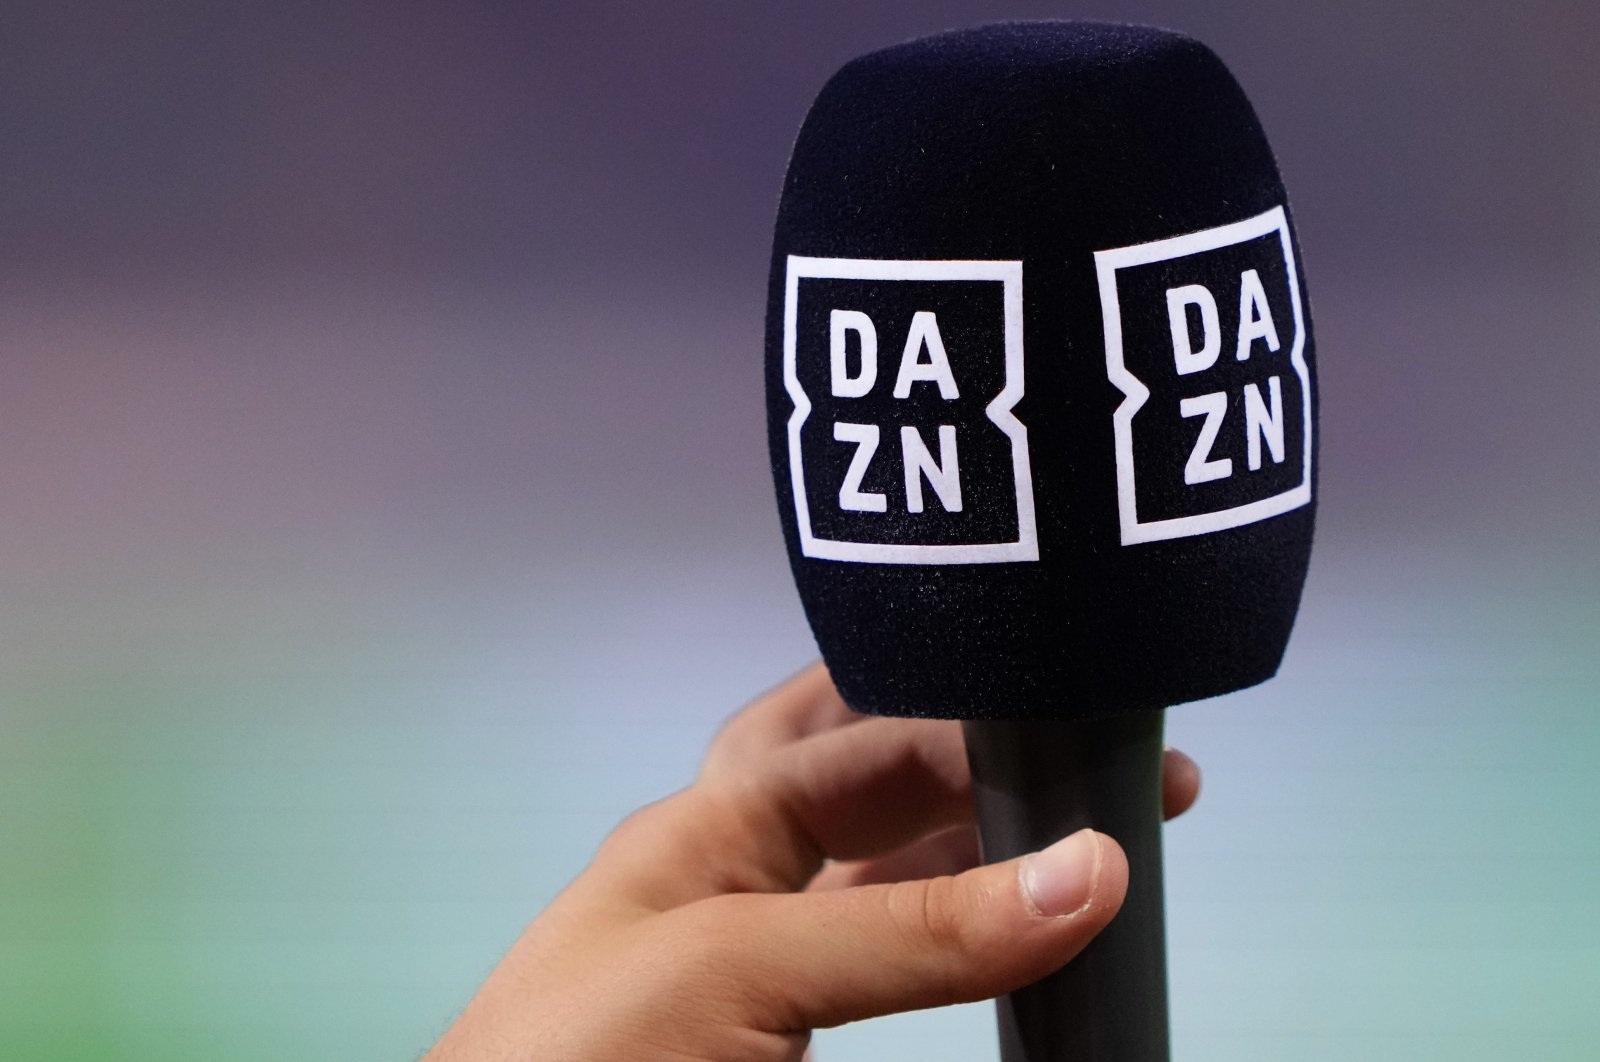 A microphone of sports steaming service DAZN is pictured during a Serie A match between Bologna and Hellas Verona at Bologna, Italy, Sept. 13, 2021. (Getty Images)